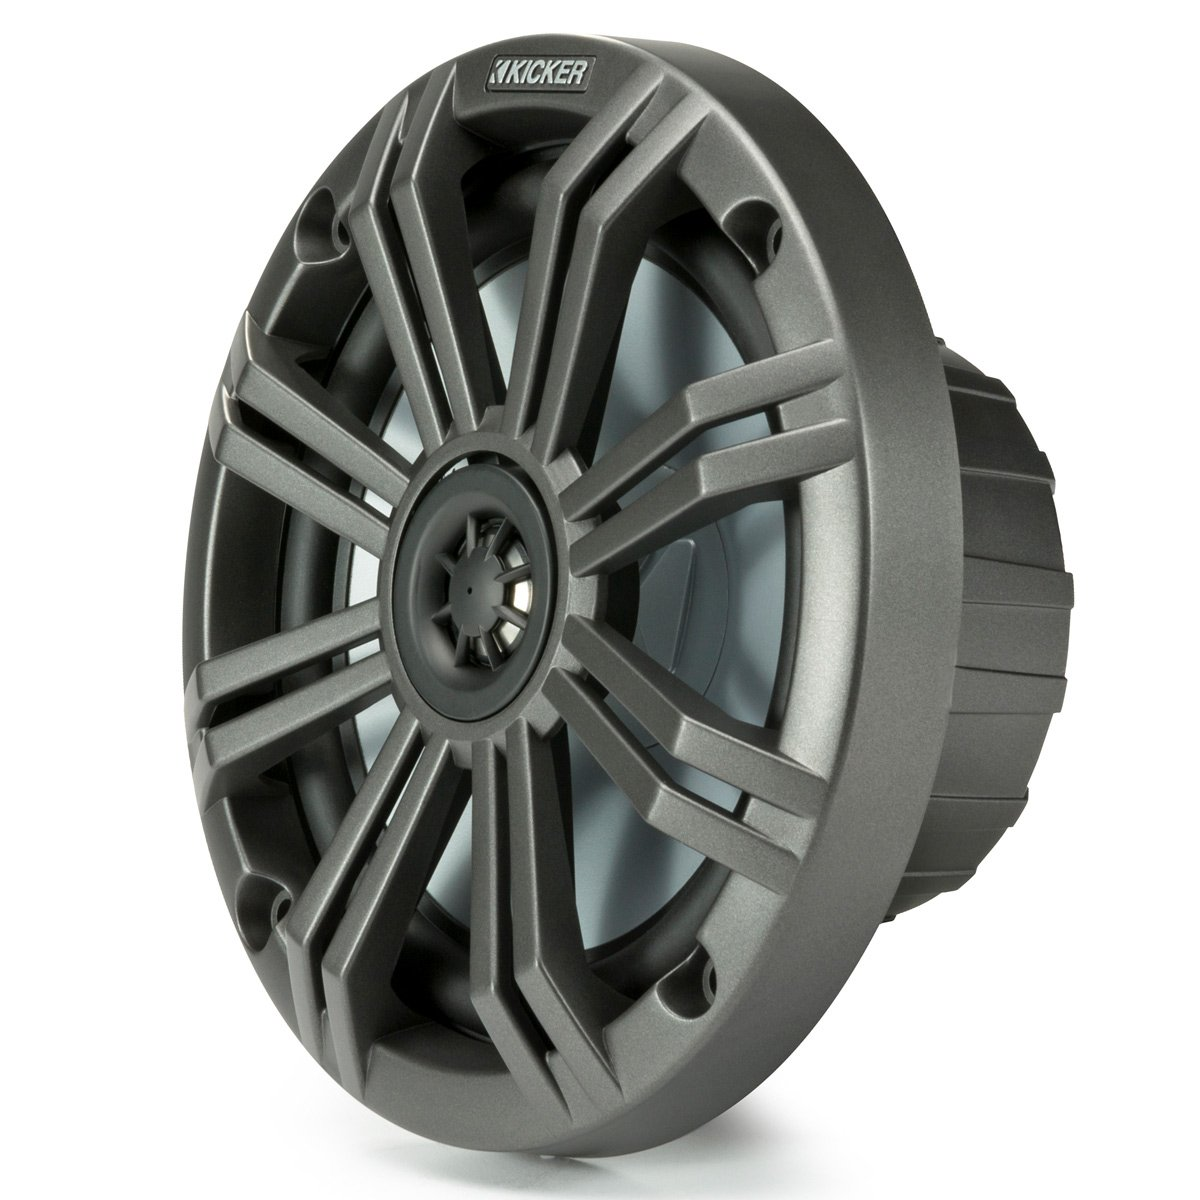 Kicker KM65 6.5-Inch (165mm) Marine Coaxial Speakers with 3/4-Inch (20mm) Tweeters, 4-Ohm, Charcoal and White Grilles by Kicker (Image #3)